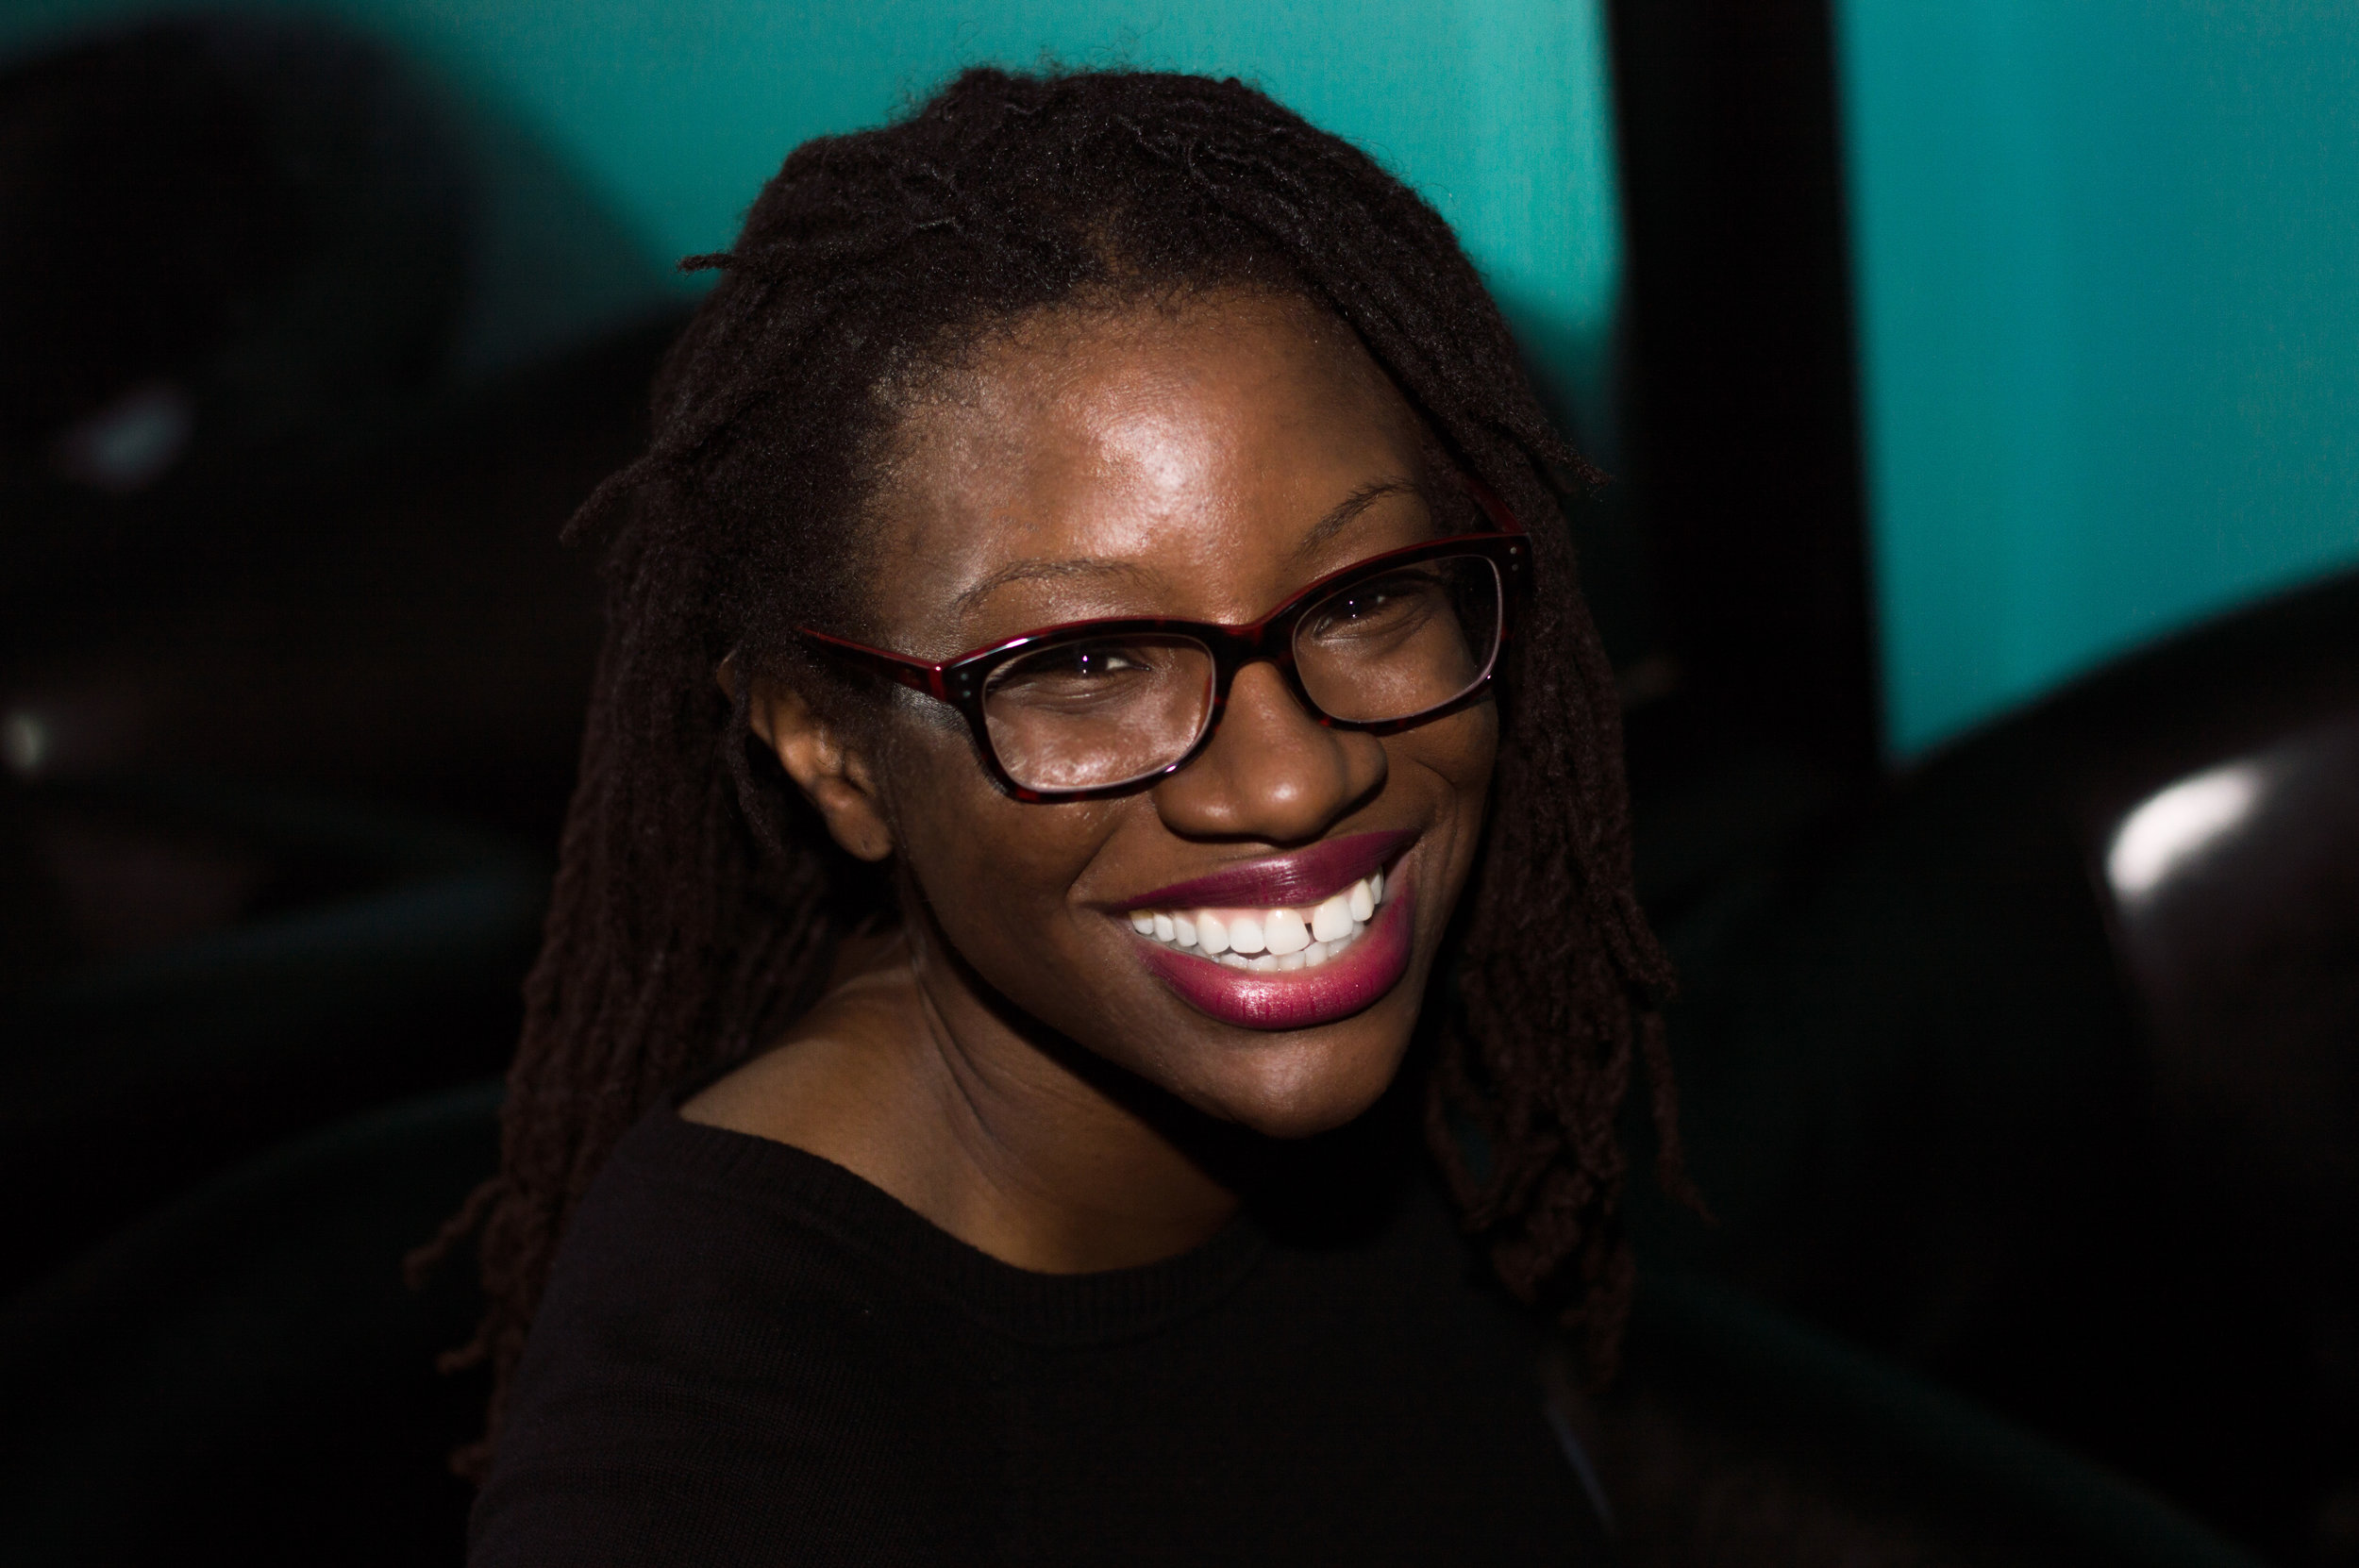 Jennifer Bartell received the MFA in Poetry from USCarolina. Her poetry has been published in  Callaloo , PLUCK!,  Blackberry: a magazine,  decomP,  As/Us , Fall Lines, The Raleigh Review, the museum americana , and Kakalak , among others. She also has work forthcoming in  Scalawag . She is a Callaloo Fellow, The Watering Hole Fellow, and The Teachers Guild Fellow. She teaches at Spring Valley High School in Columbia. (photo credit Lester Boykin)